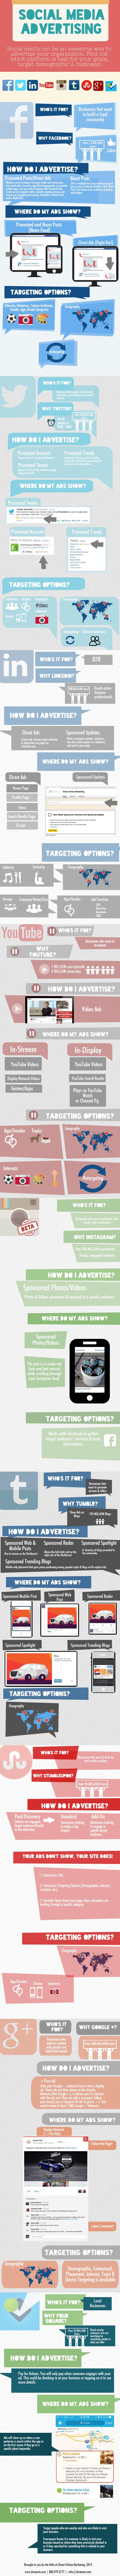 Social Media Advertising: Which Network Is Right For Your Business - infographic